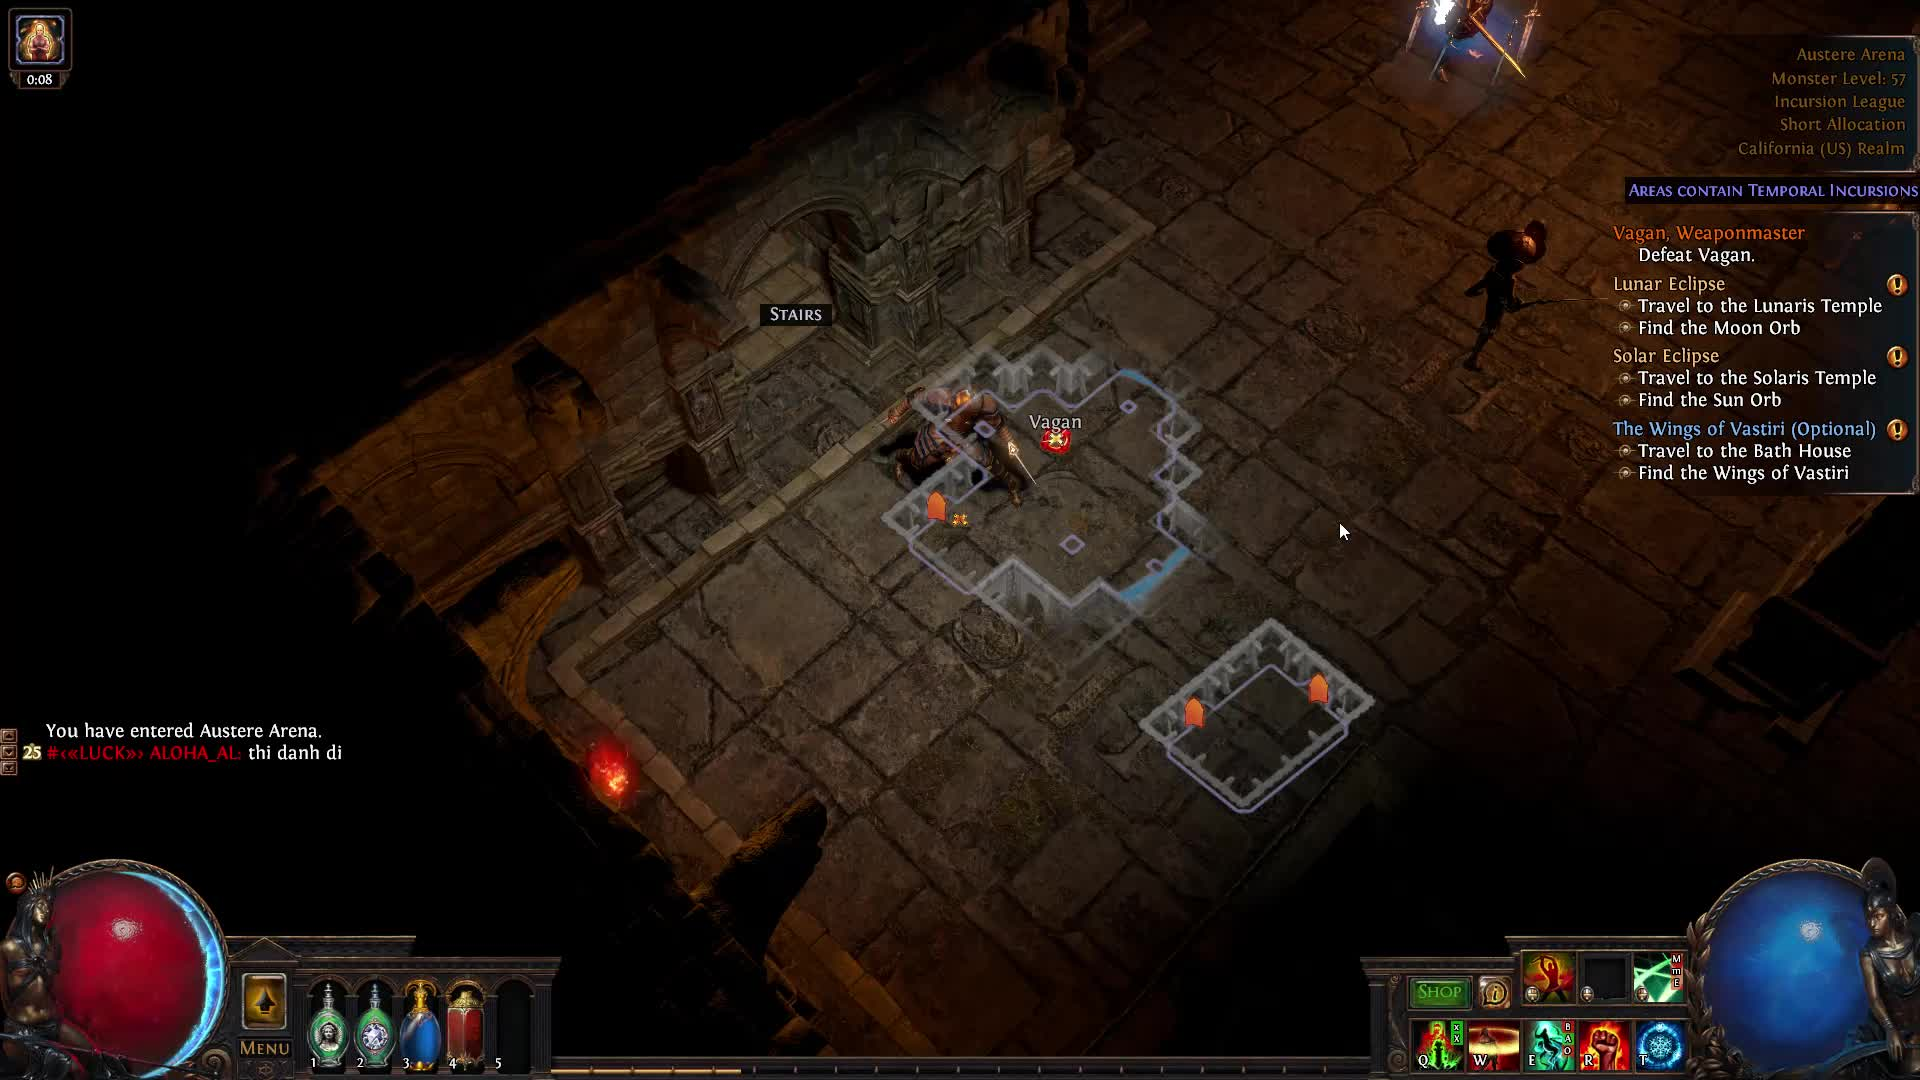 Path of Exile 6 24 2018 11 49 37 PM | Find, Make & Share Gfycat GIFs